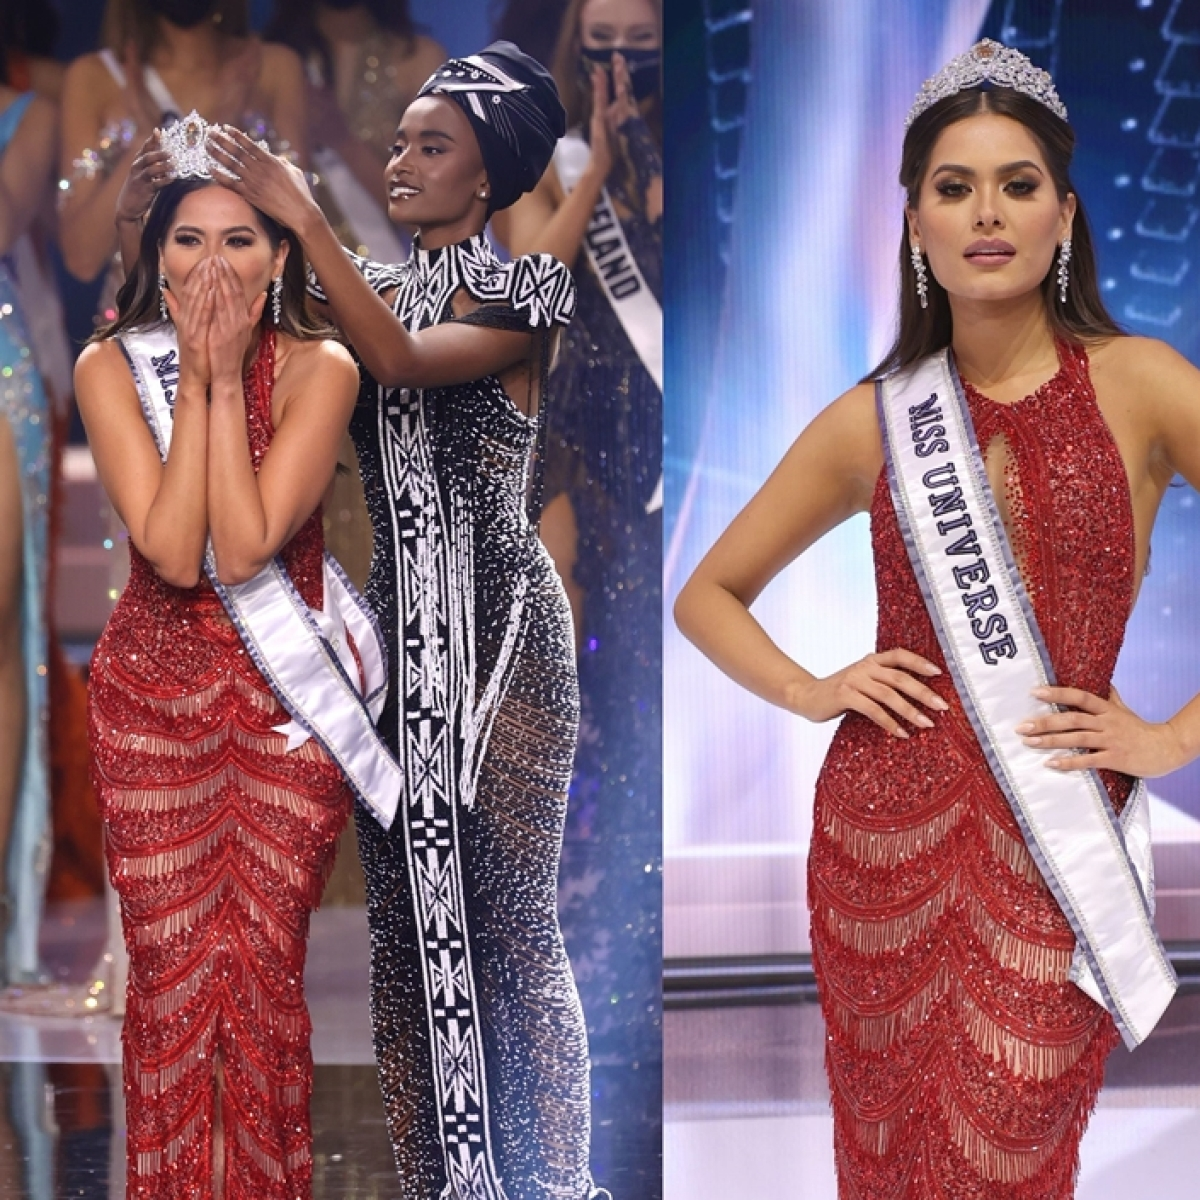 Andrea Meza of Mexico crowned Miss Universe 2021